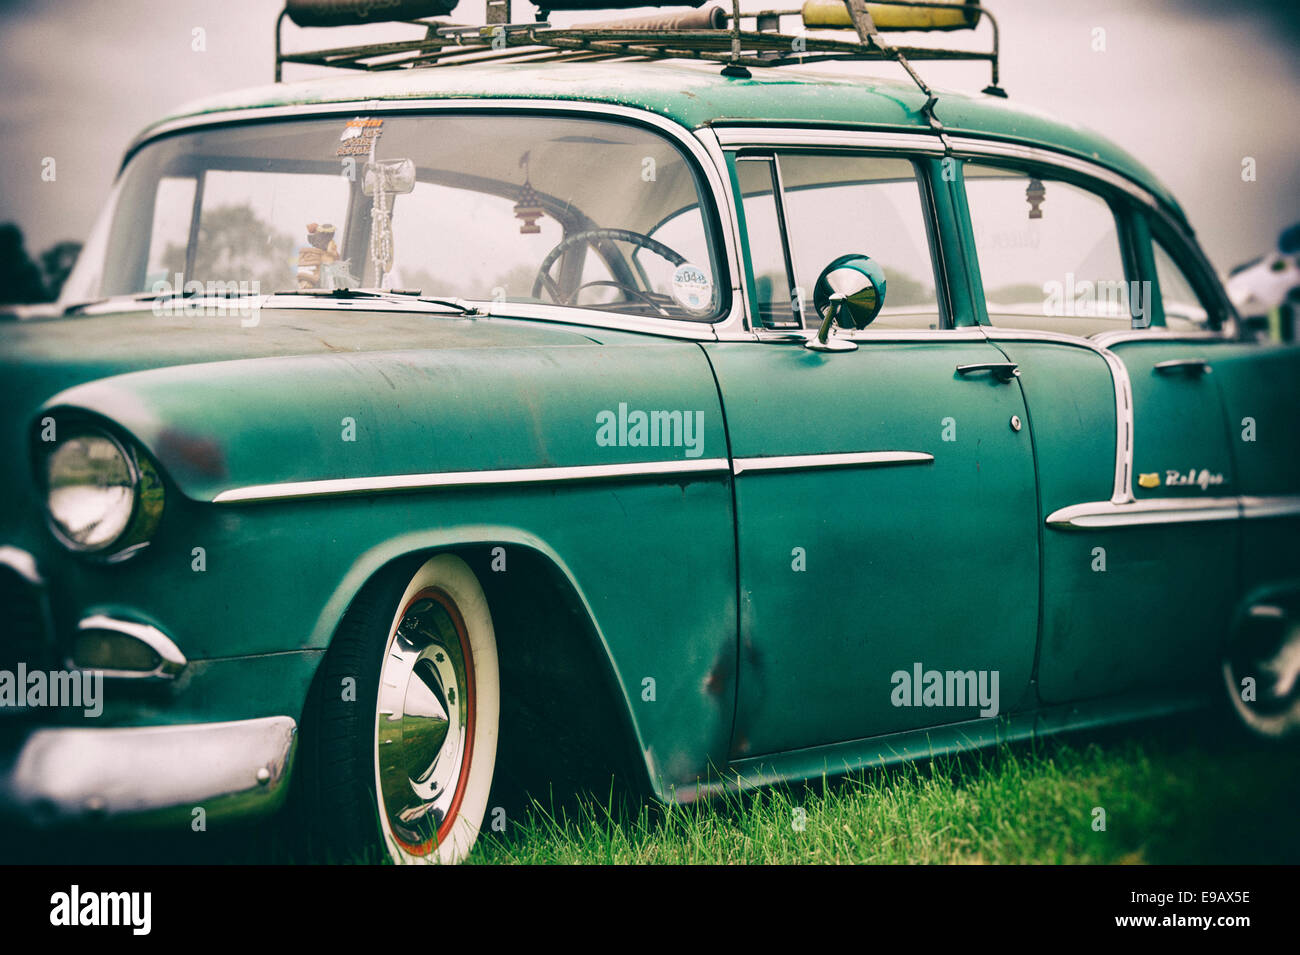 Old Chevrolet, Bel Air. Chevy. Classic American car. Vintage Camera ...